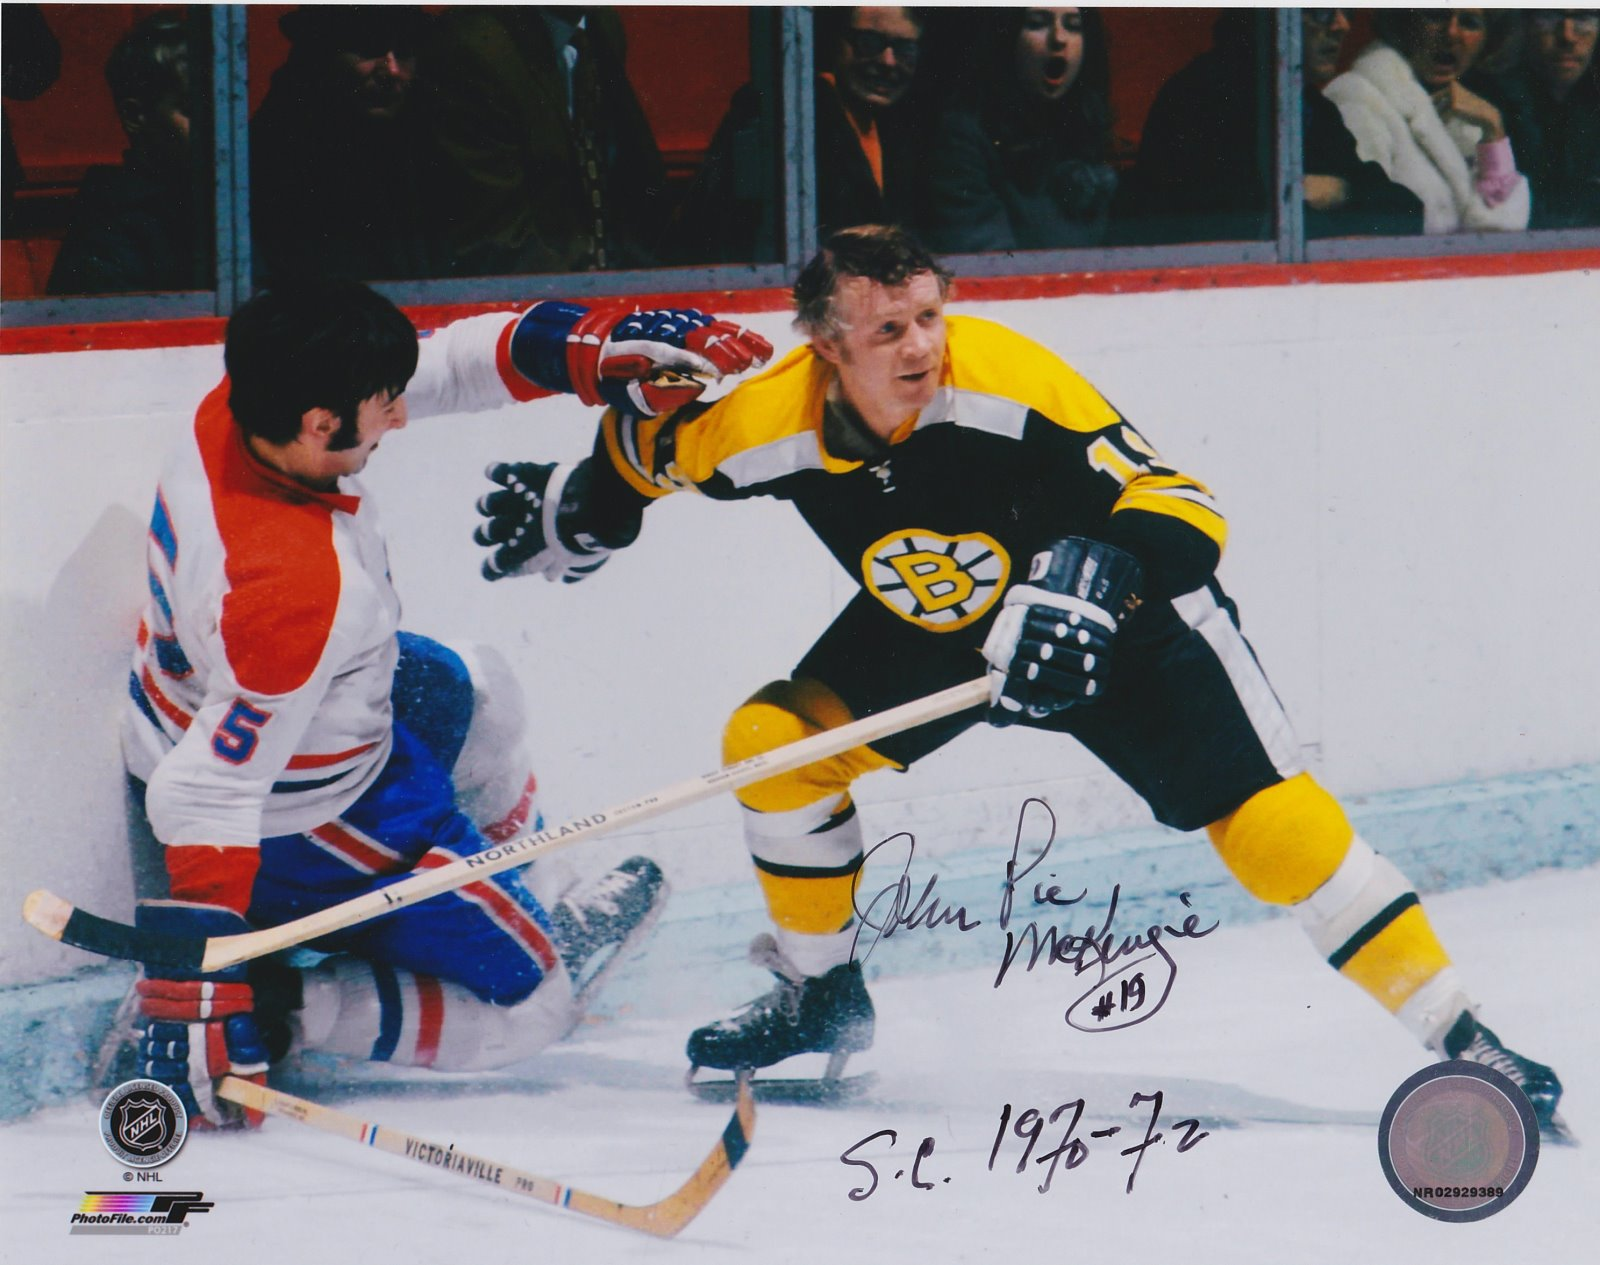 John McKenzie Autograph 8x10 Color photo Boston Bruins